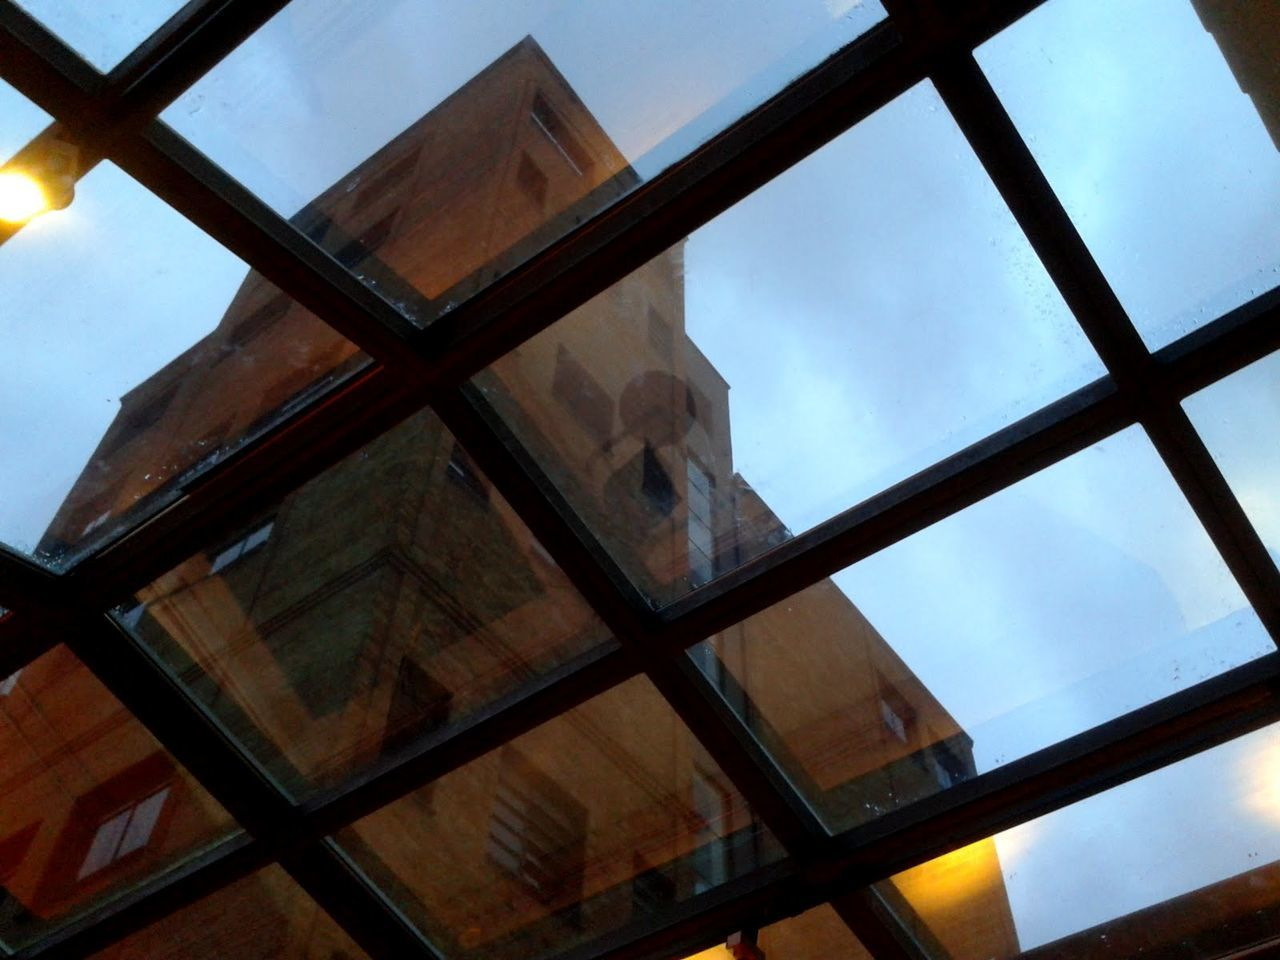 sky, low angle view, window, indoors, architecture, no people, built structure, day, nature, close-up